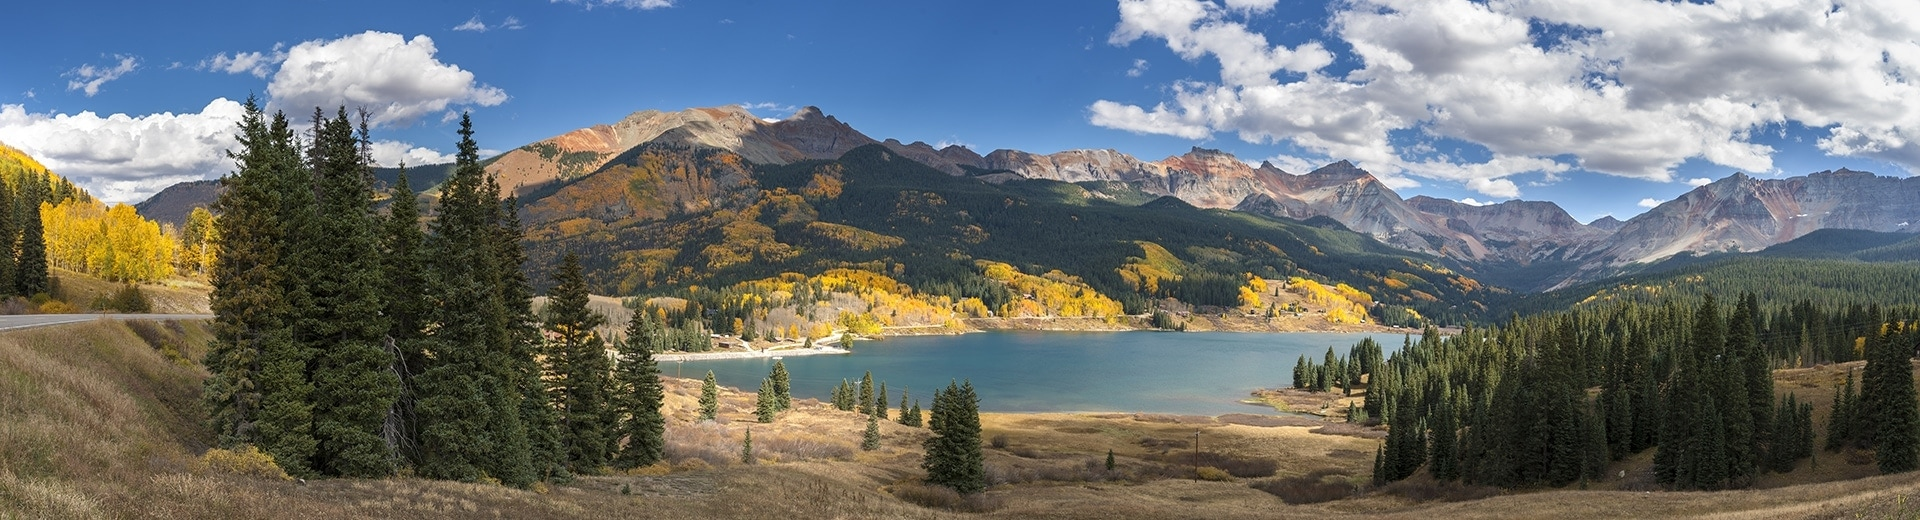 10 Best and Most Affordable Places to Live in Colorado